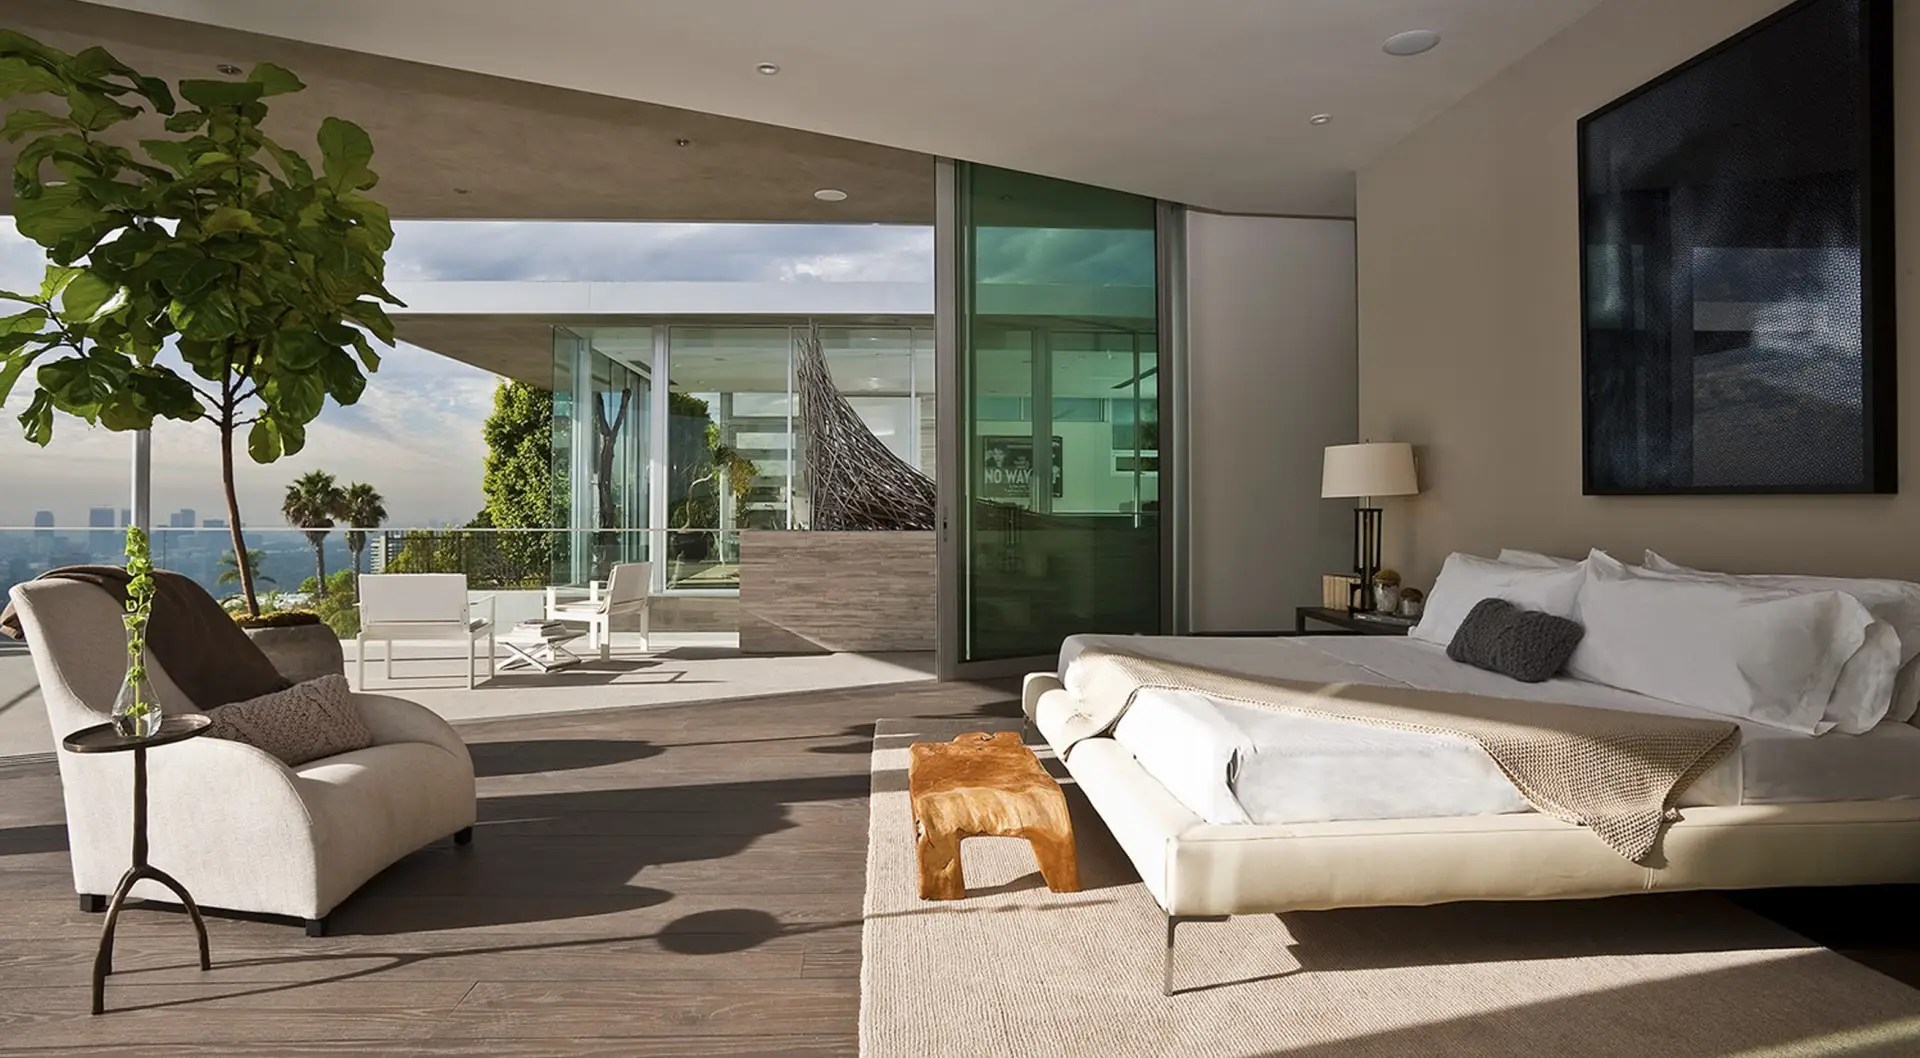 The bedrooms' glass walls pull back for an open-air sleeping experience.